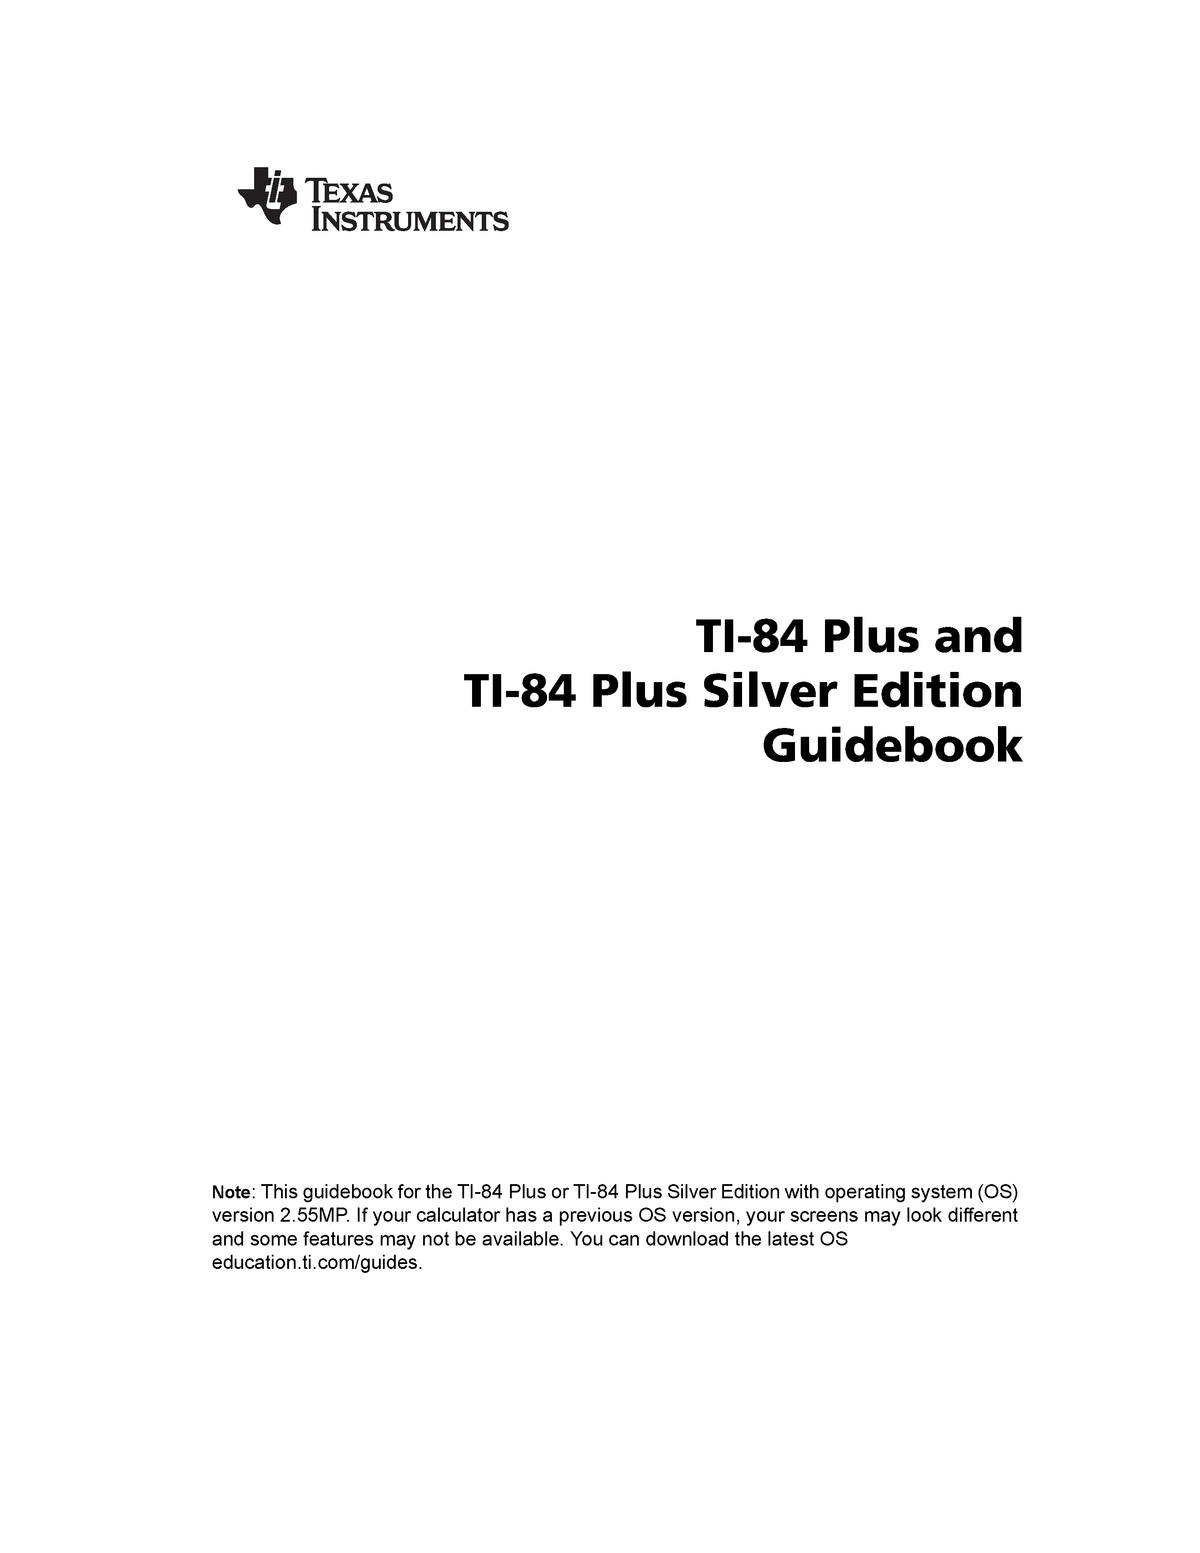 TI84Plus guidebook EN - Tips on how to use the calculator ti